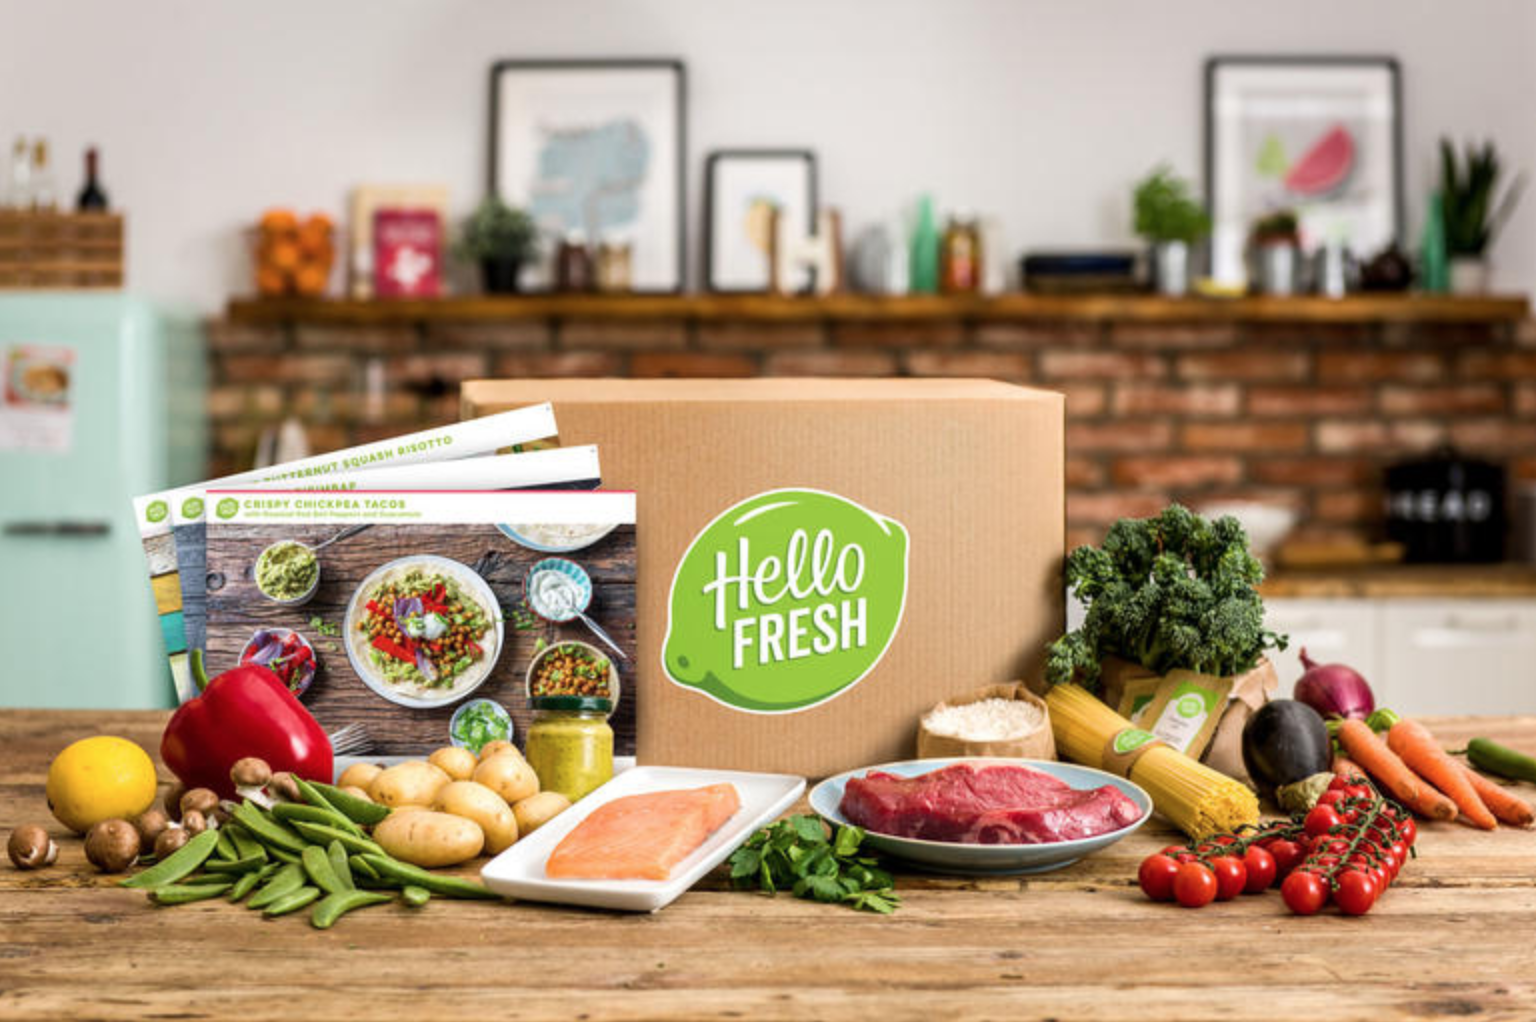 An advertisement for HelloFresh featuring an array of ingredients included in a meal-kit.